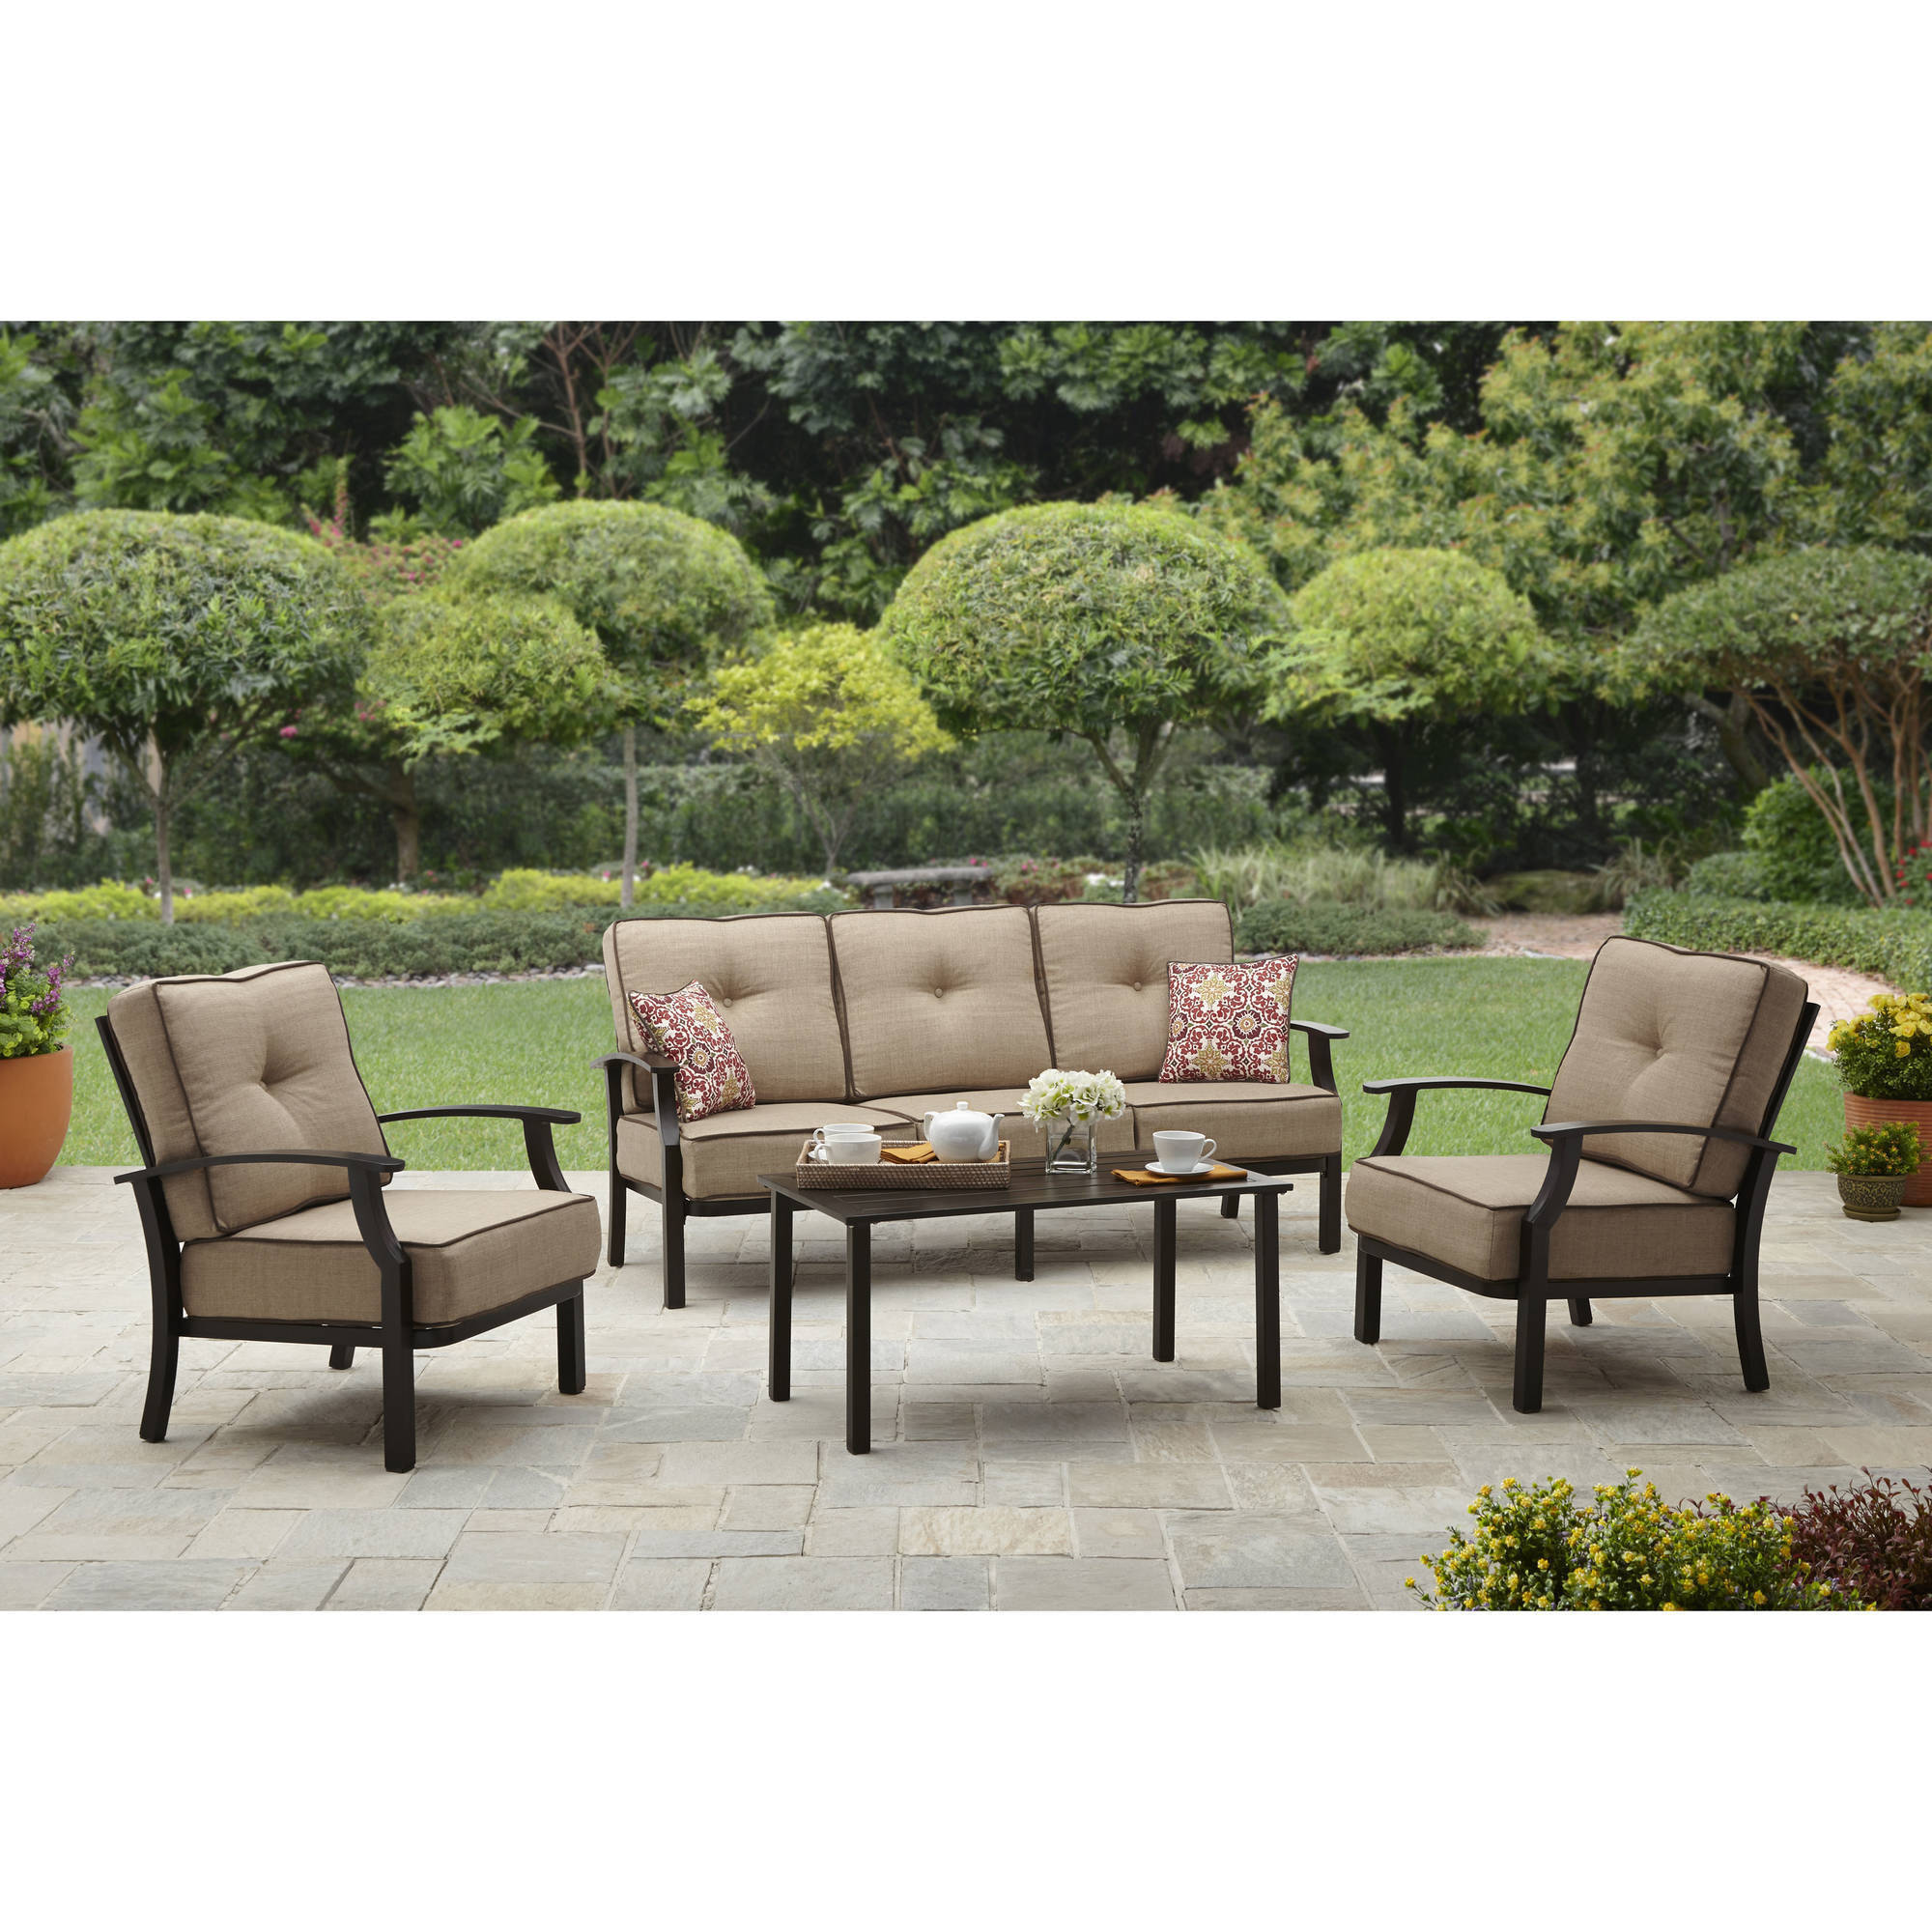 Best Choice Products 7 Piece Outdoor Patio Wicker Sectional